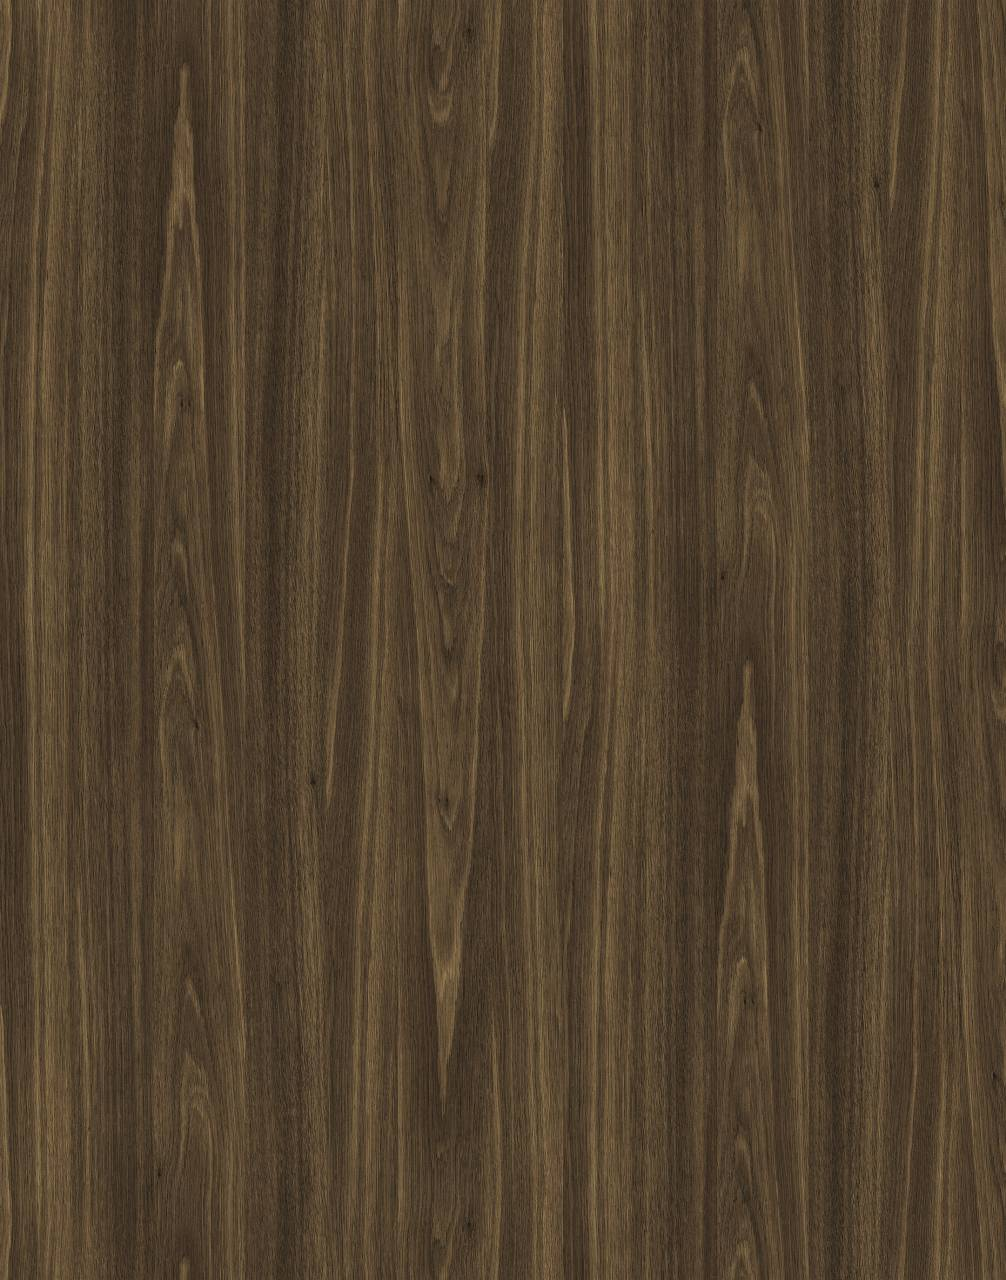 K082 Bourbon Oak (MF PB sample)